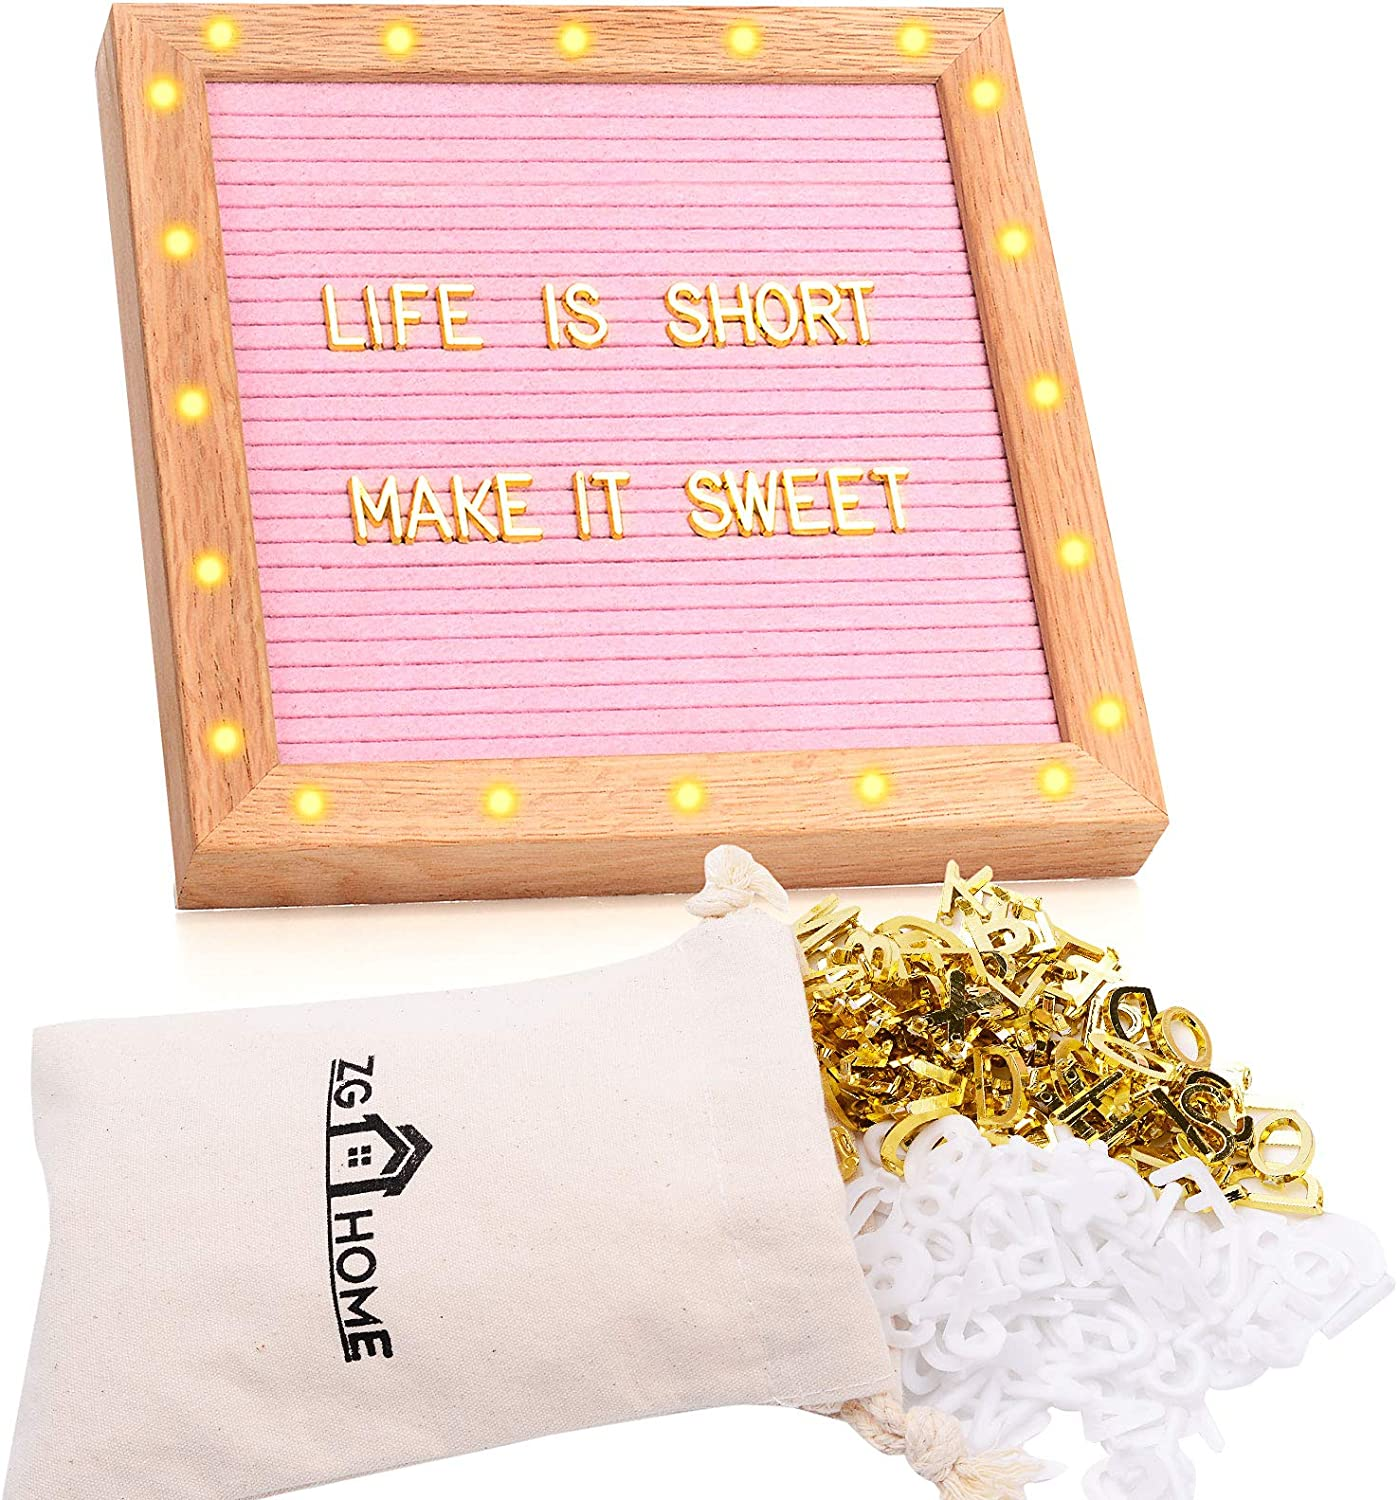 ZG Home LED Lights Felt Letter Board, 317 Golden and White Precut Letters, Numbers, Emojis, and Symbols, 1 Inch Wide Oak Wood Frame with Built-in Stand and Canvas Bag (Pink)